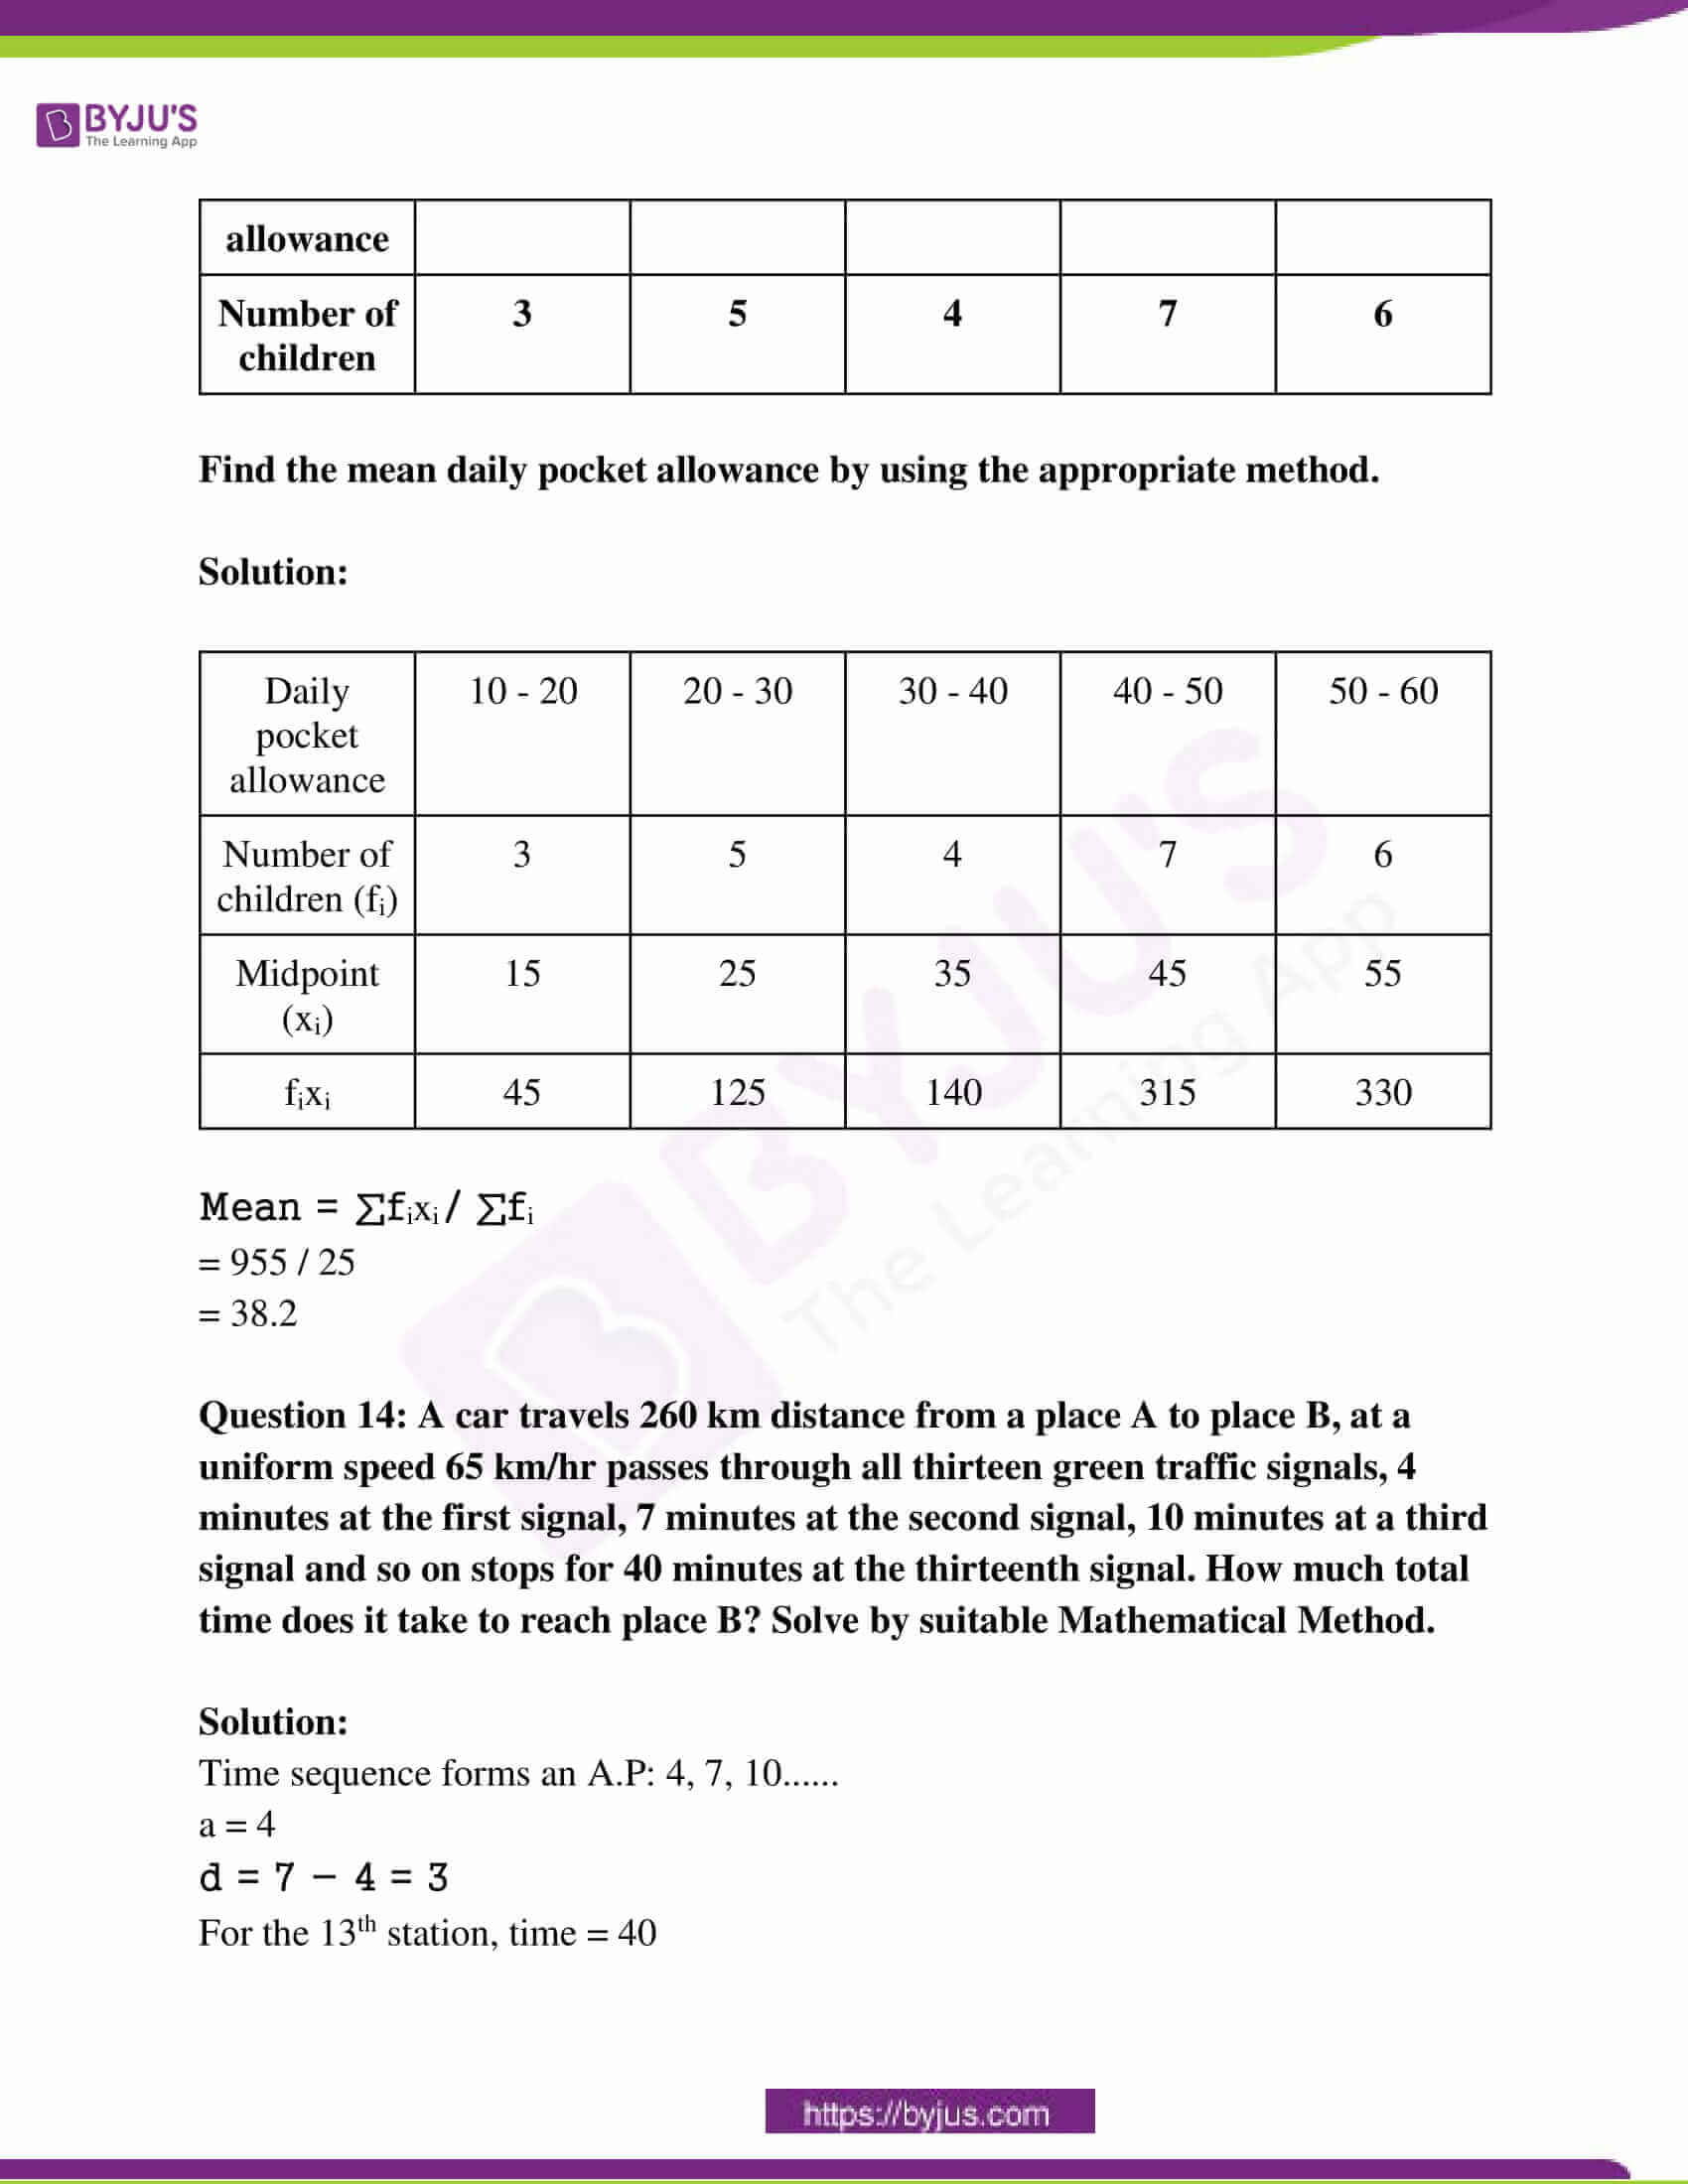 rajasthan board class 10 examination question paper sol march 2017 06